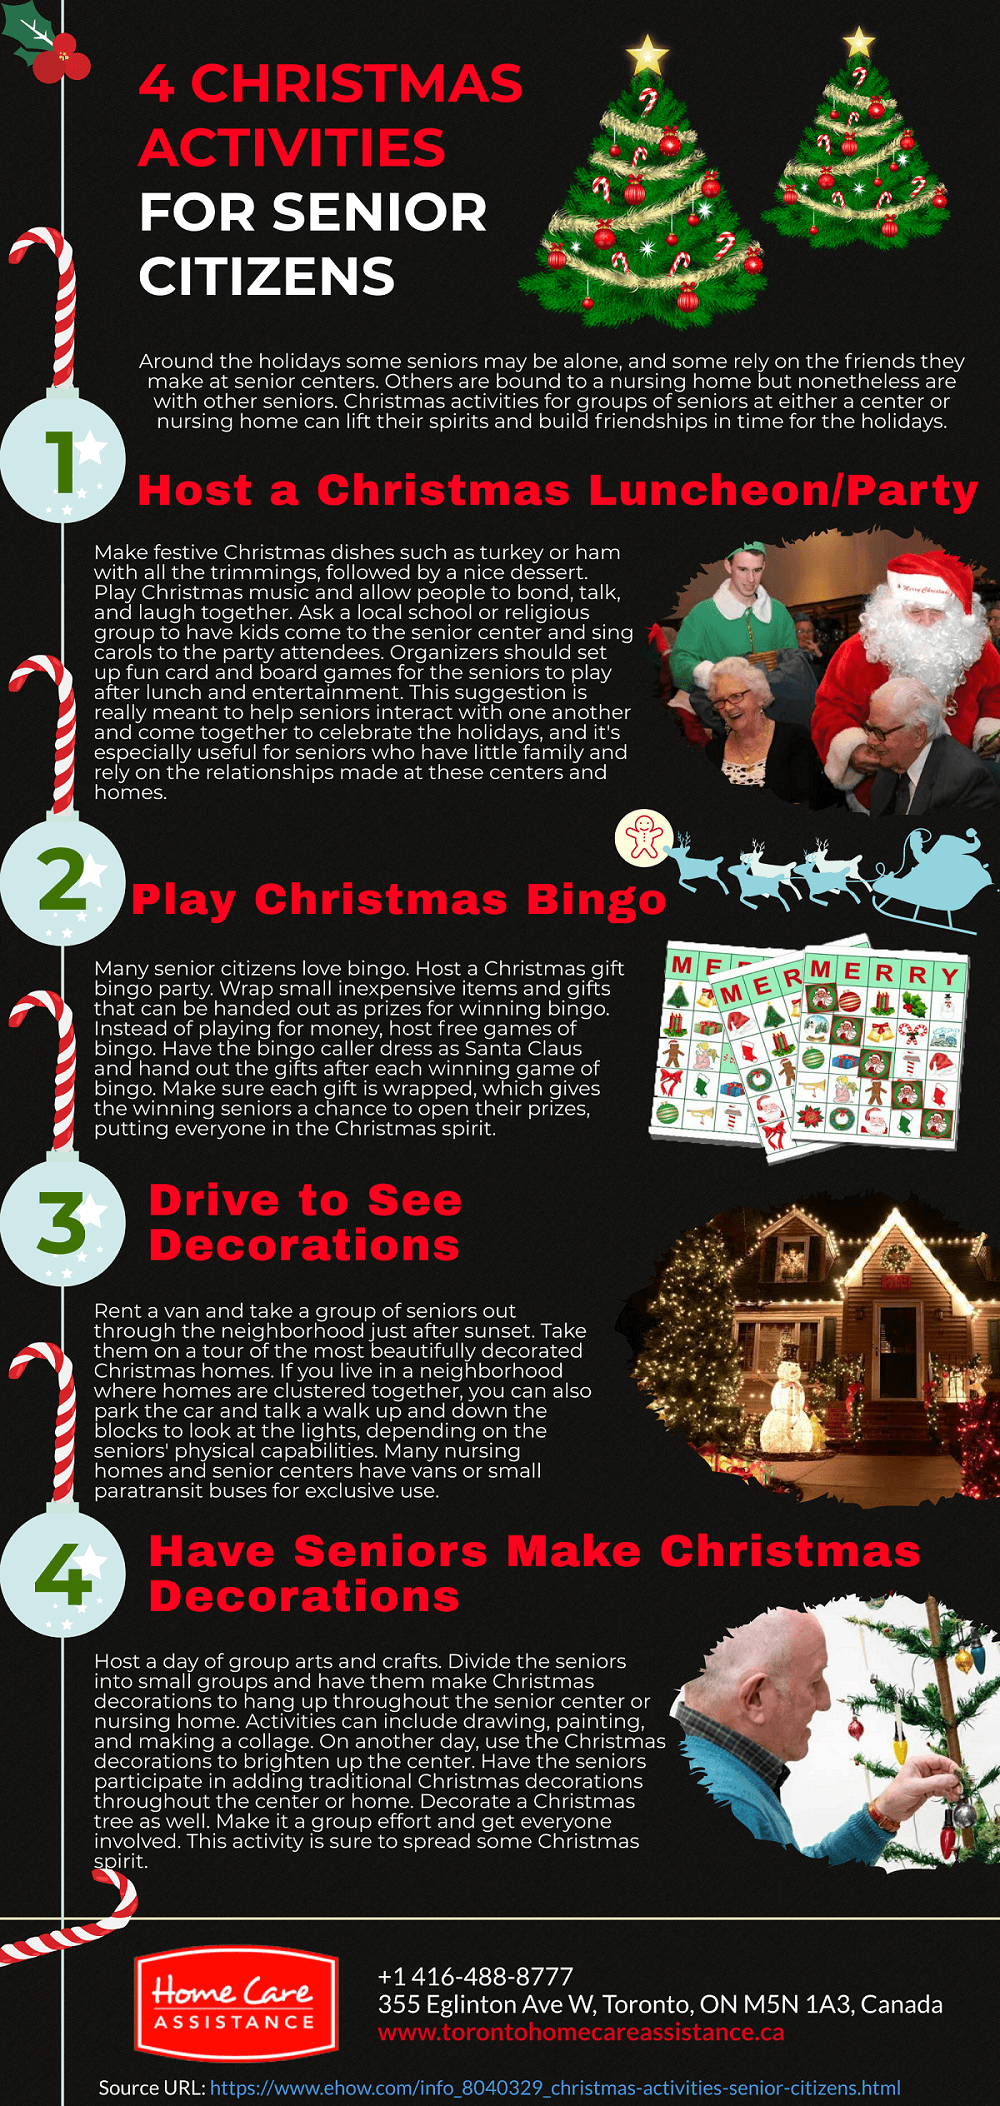 4 Christmas Activities for Senior Citizens [Infographic]